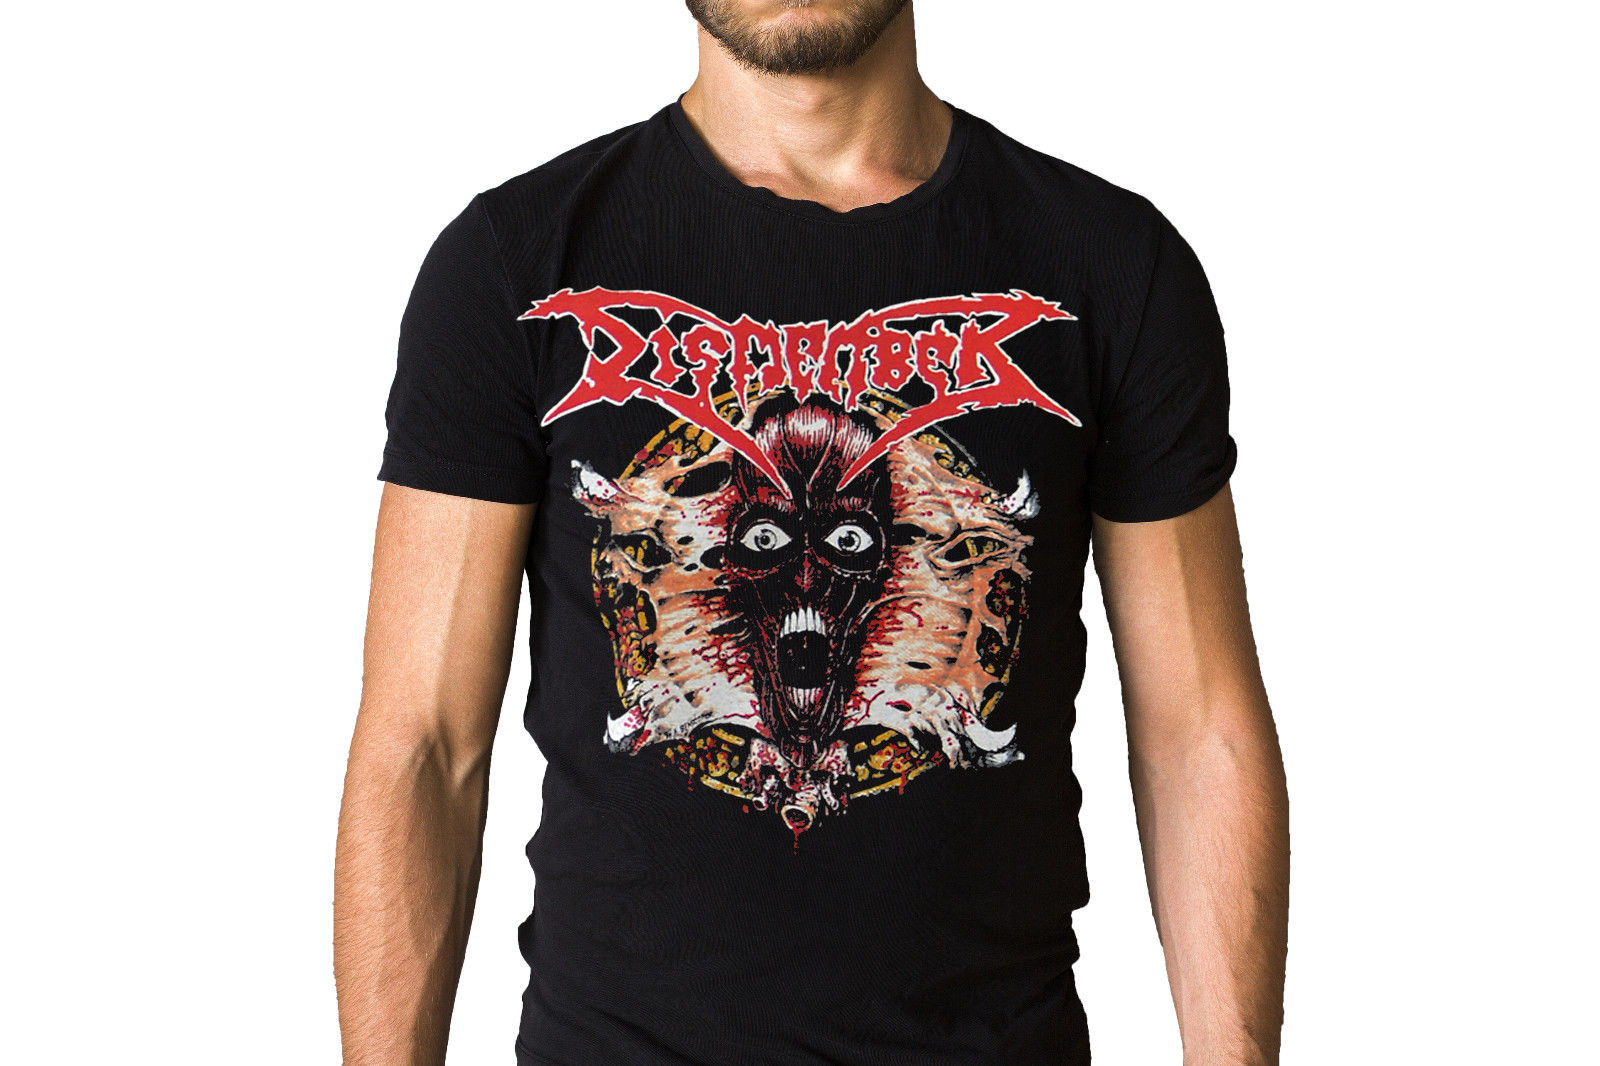 Dismember Band Face Ripper Logo T-Shirt New T Shirts Unisex Funny Tops Tee Fresh Design Summer Good Quality Funny